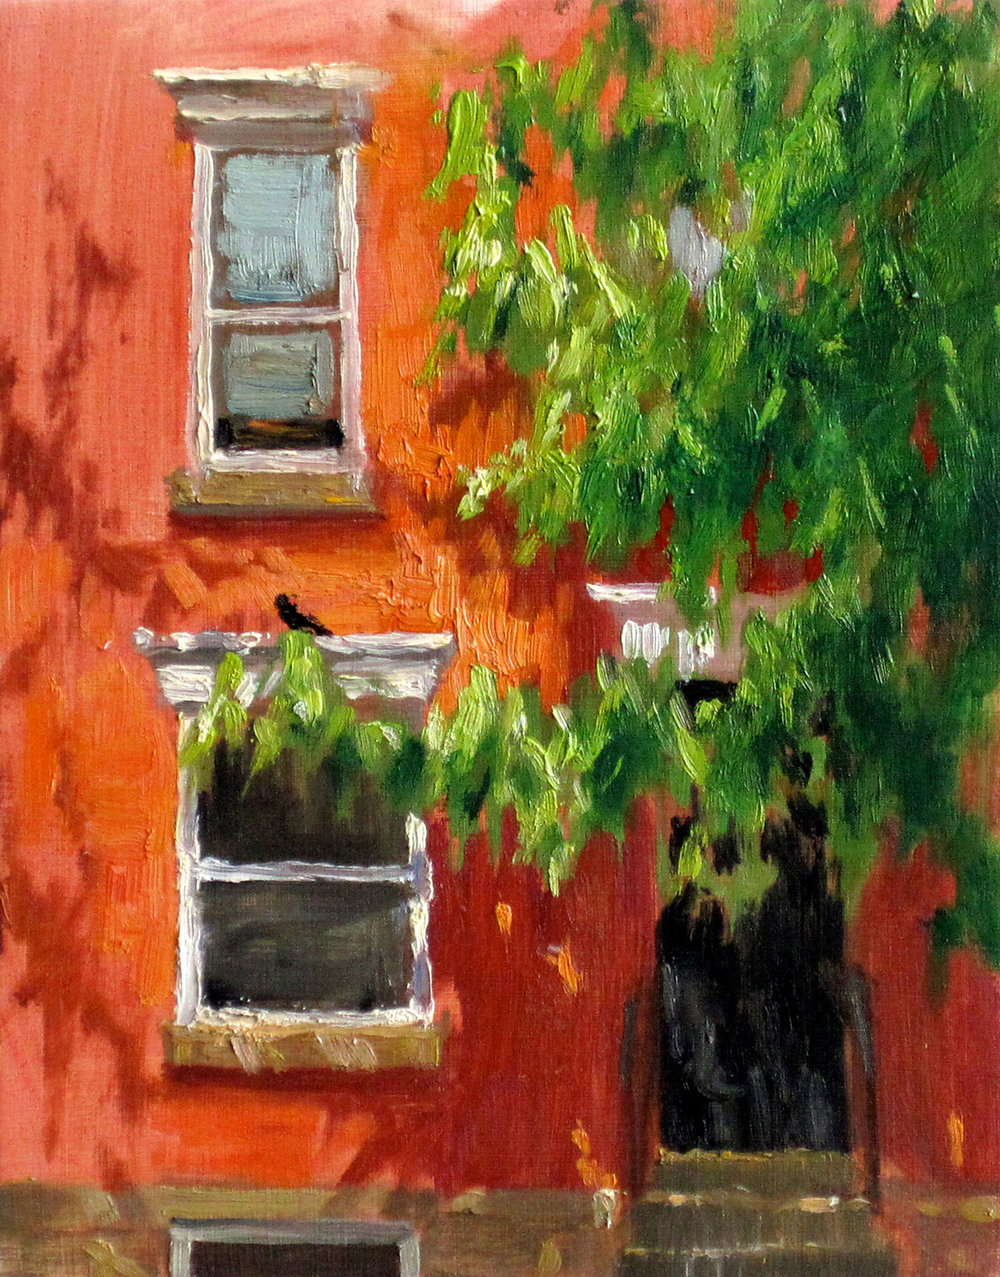 W-NITC-Spring Green Against Brick-Dalrymple-8x10-oil on board-2012-SOLD.jpg